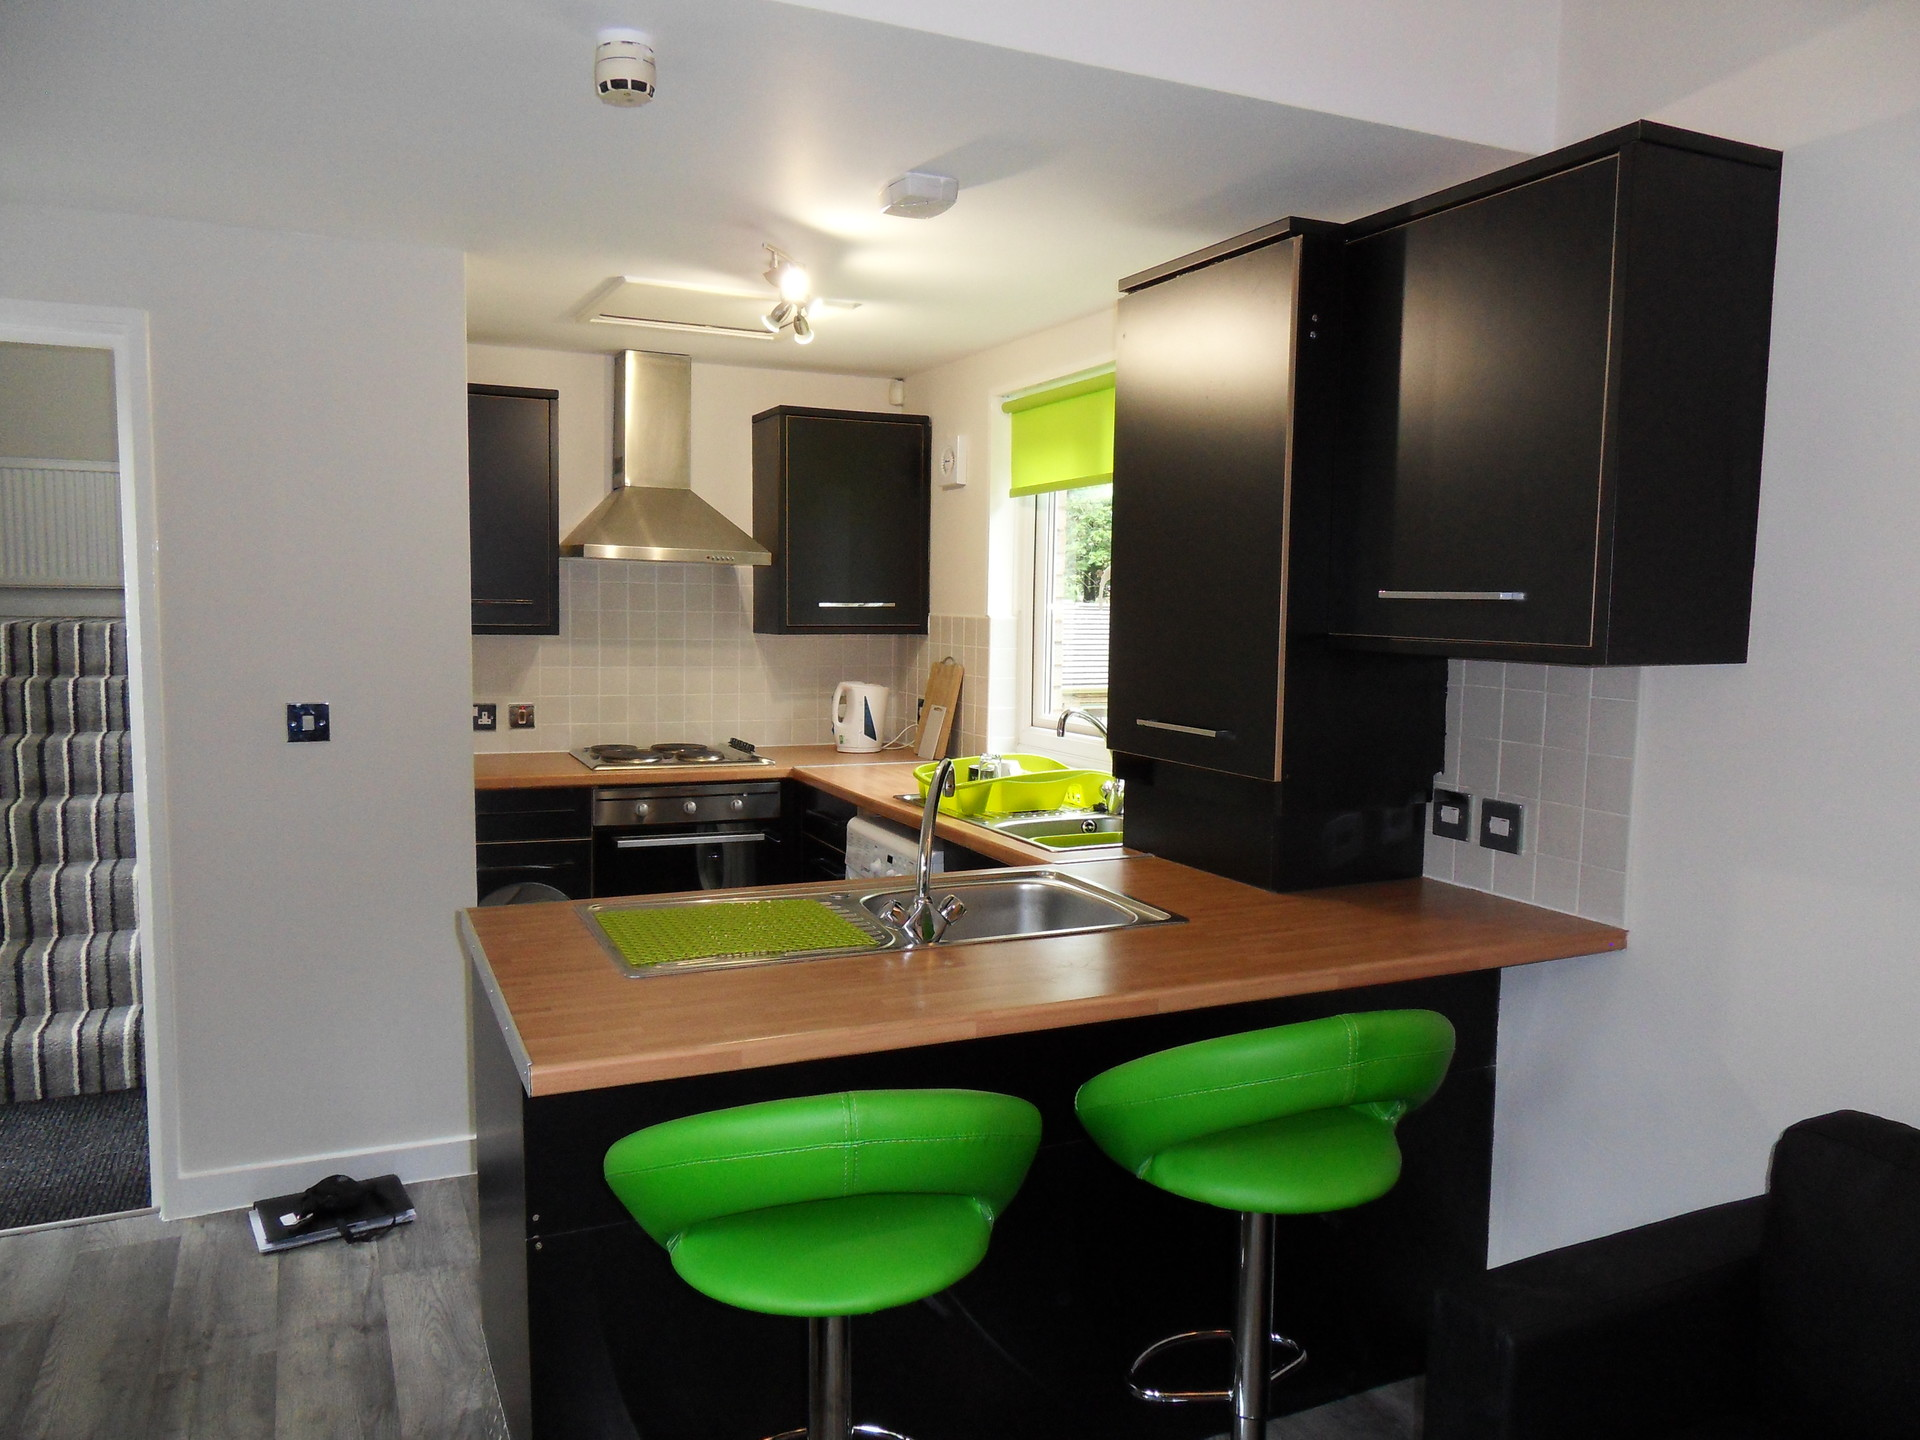 6 Bed House Share, Fully furnished,Norfolk Park Student village,